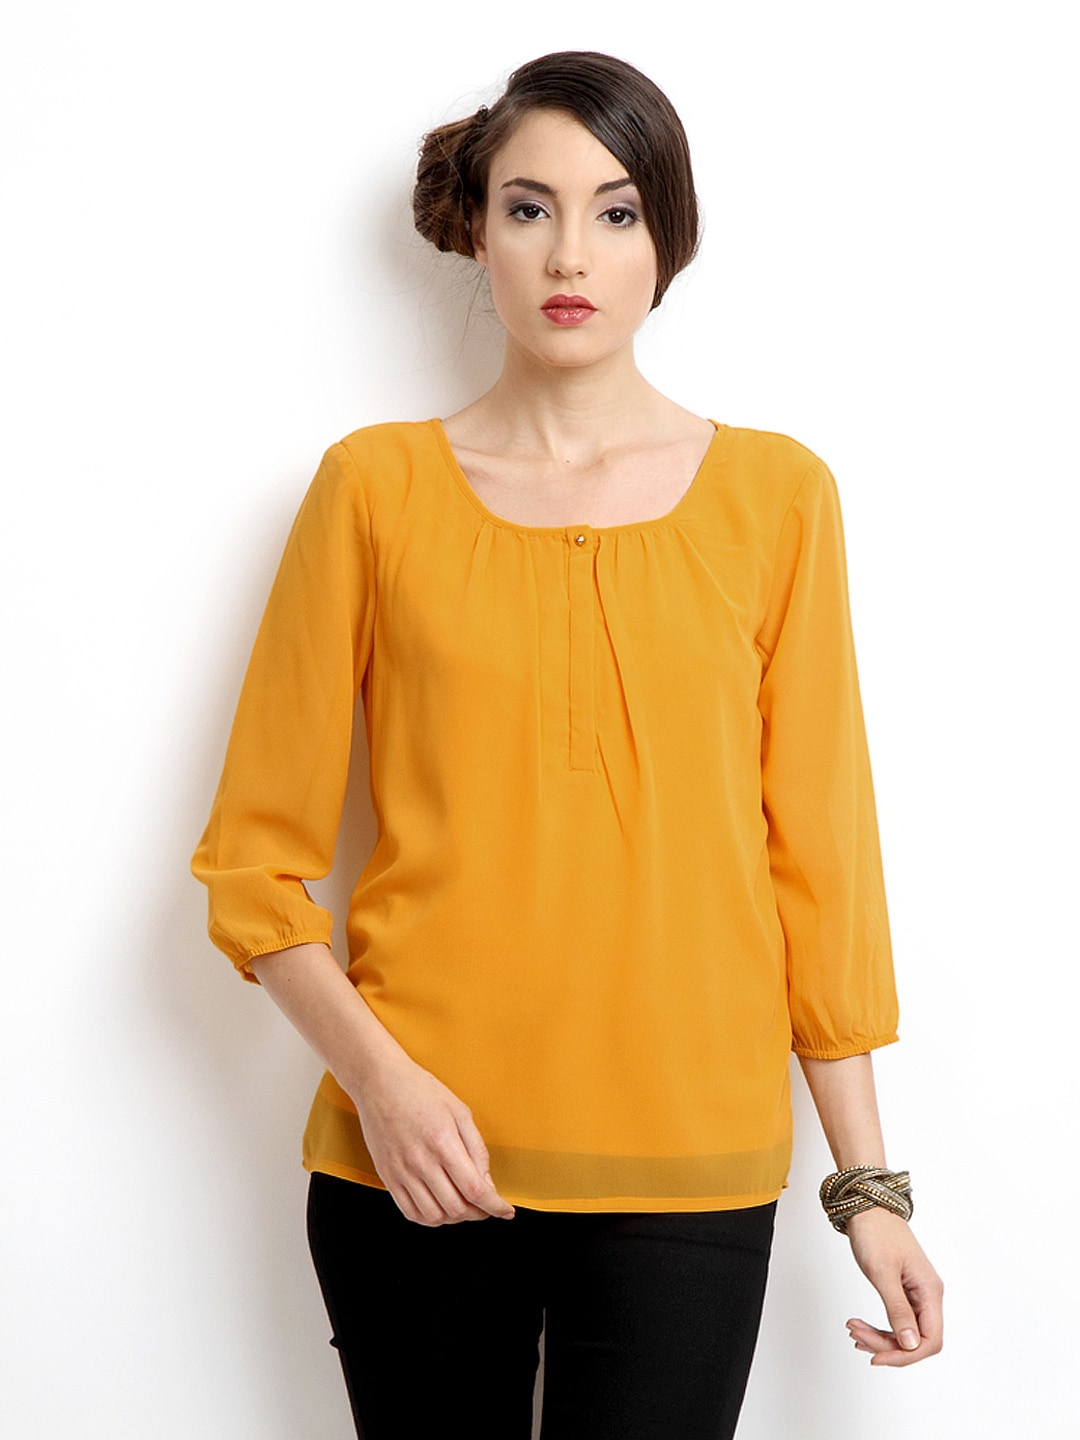 Buy Women Mustard Tops Online In India At housraeg.gq Select From A Large Variety Of Mustard Tops For Women & Girls And .